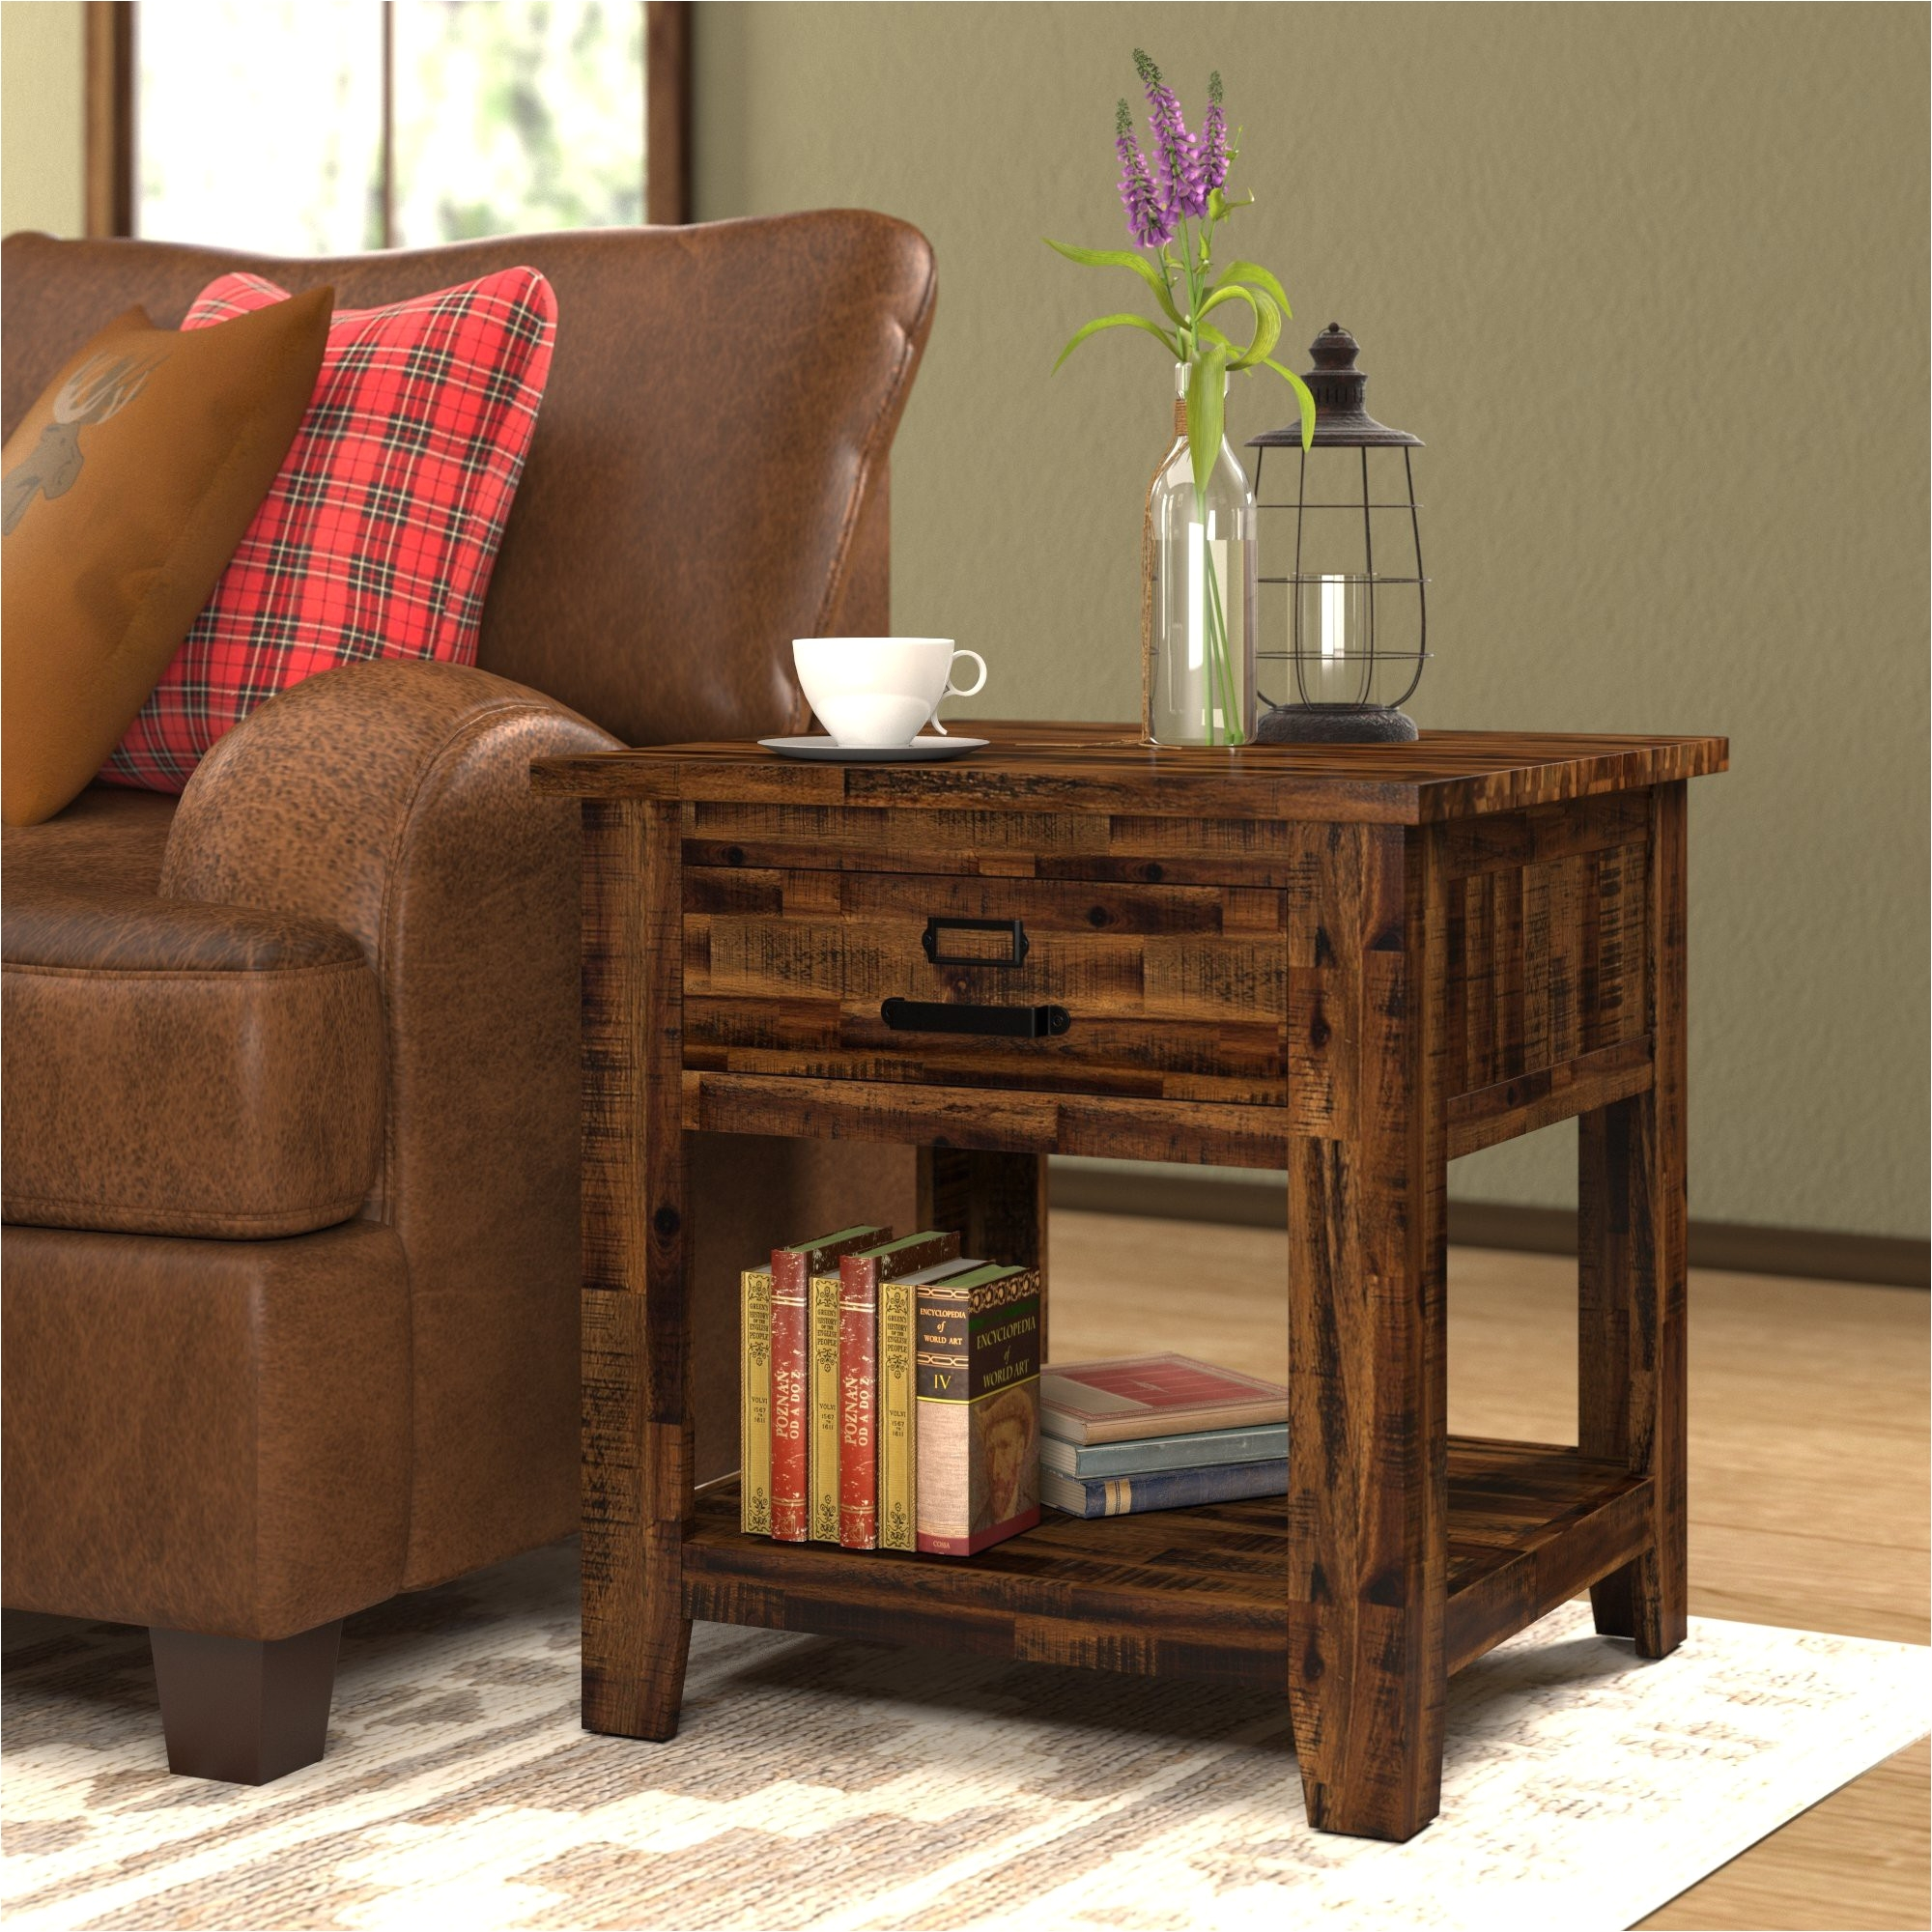 Kid Friendly Coffee Table Ideas Inspirational Small Coffee Table Ideas Inspirational End Tables Interesting Living